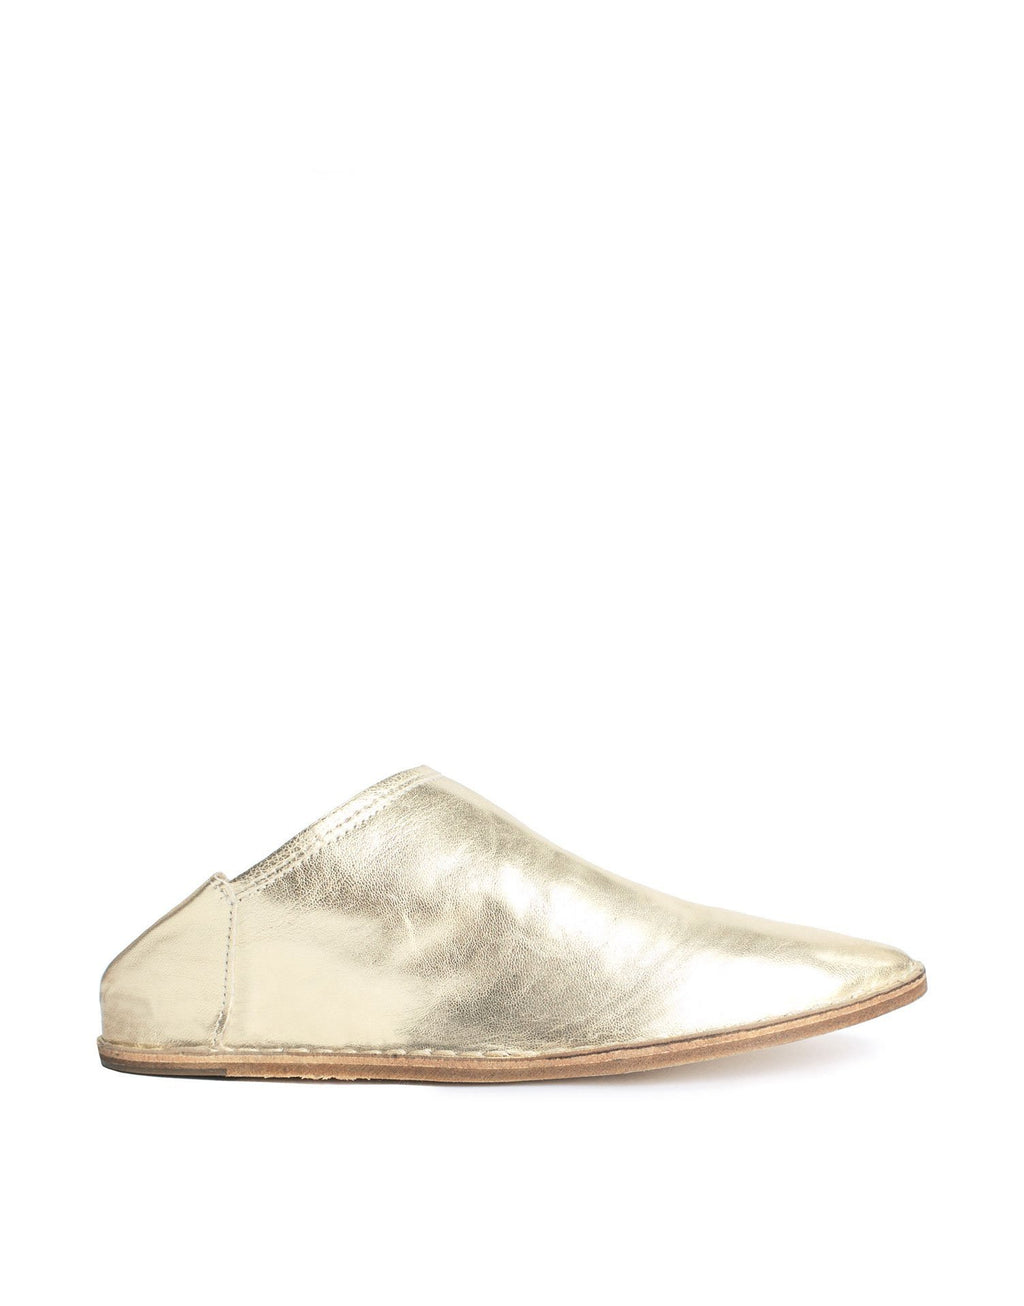 Soft nappa gold leather slip on slipper shoe by designer Georgina Goodman